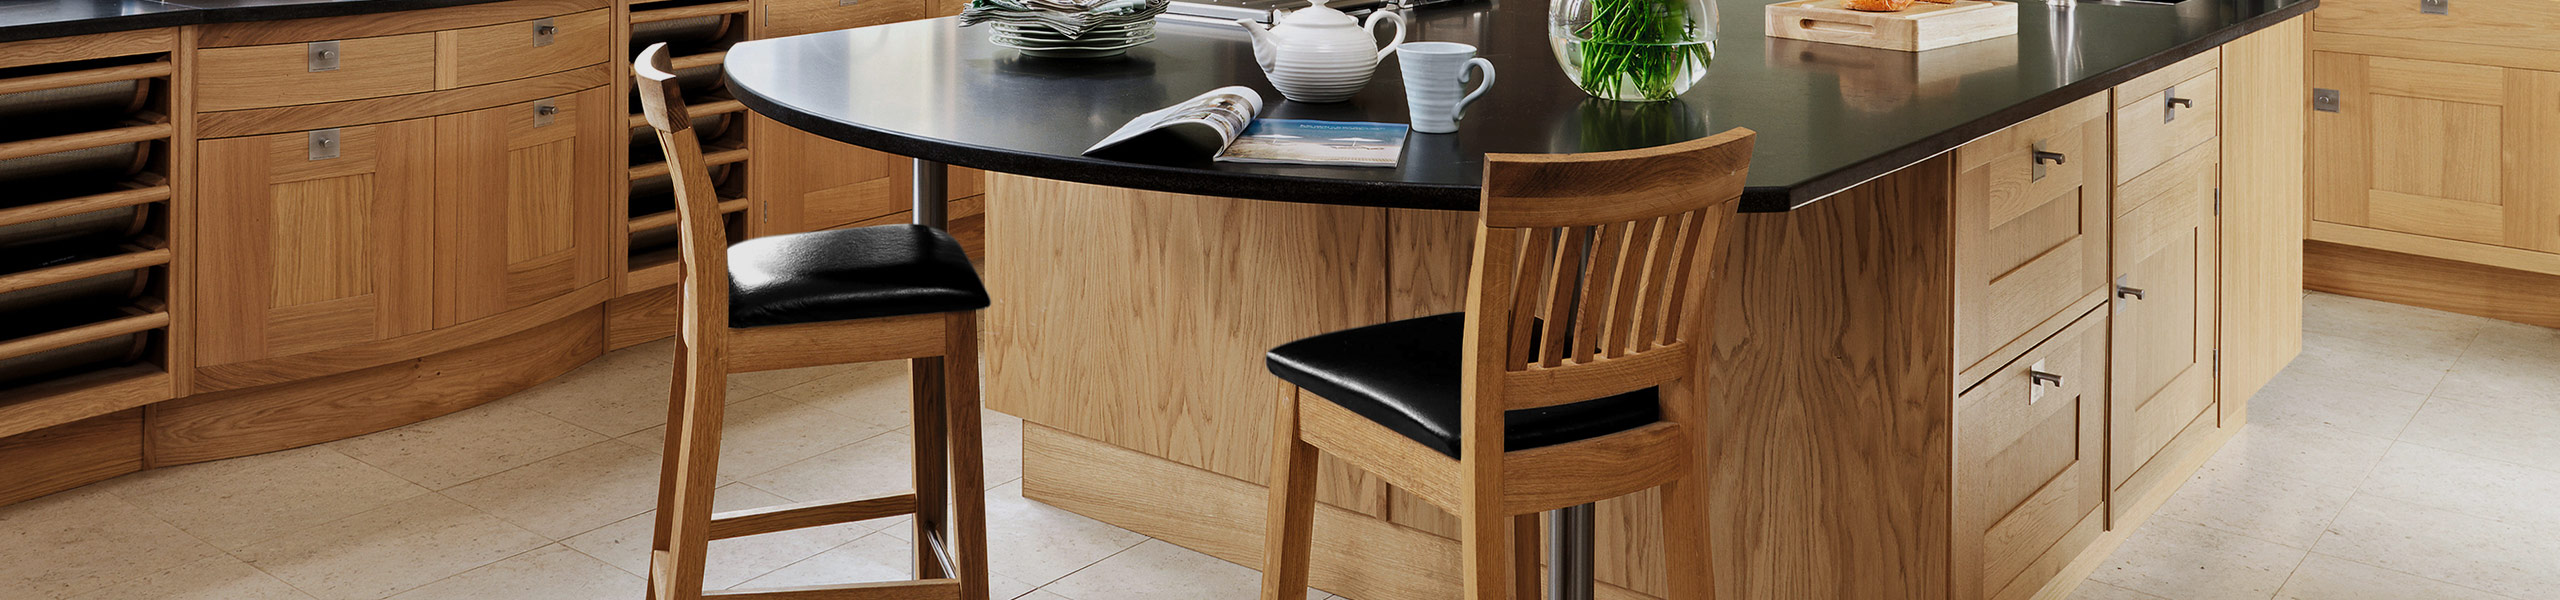 Grasmere Oak Bar Stool Black Video Banner